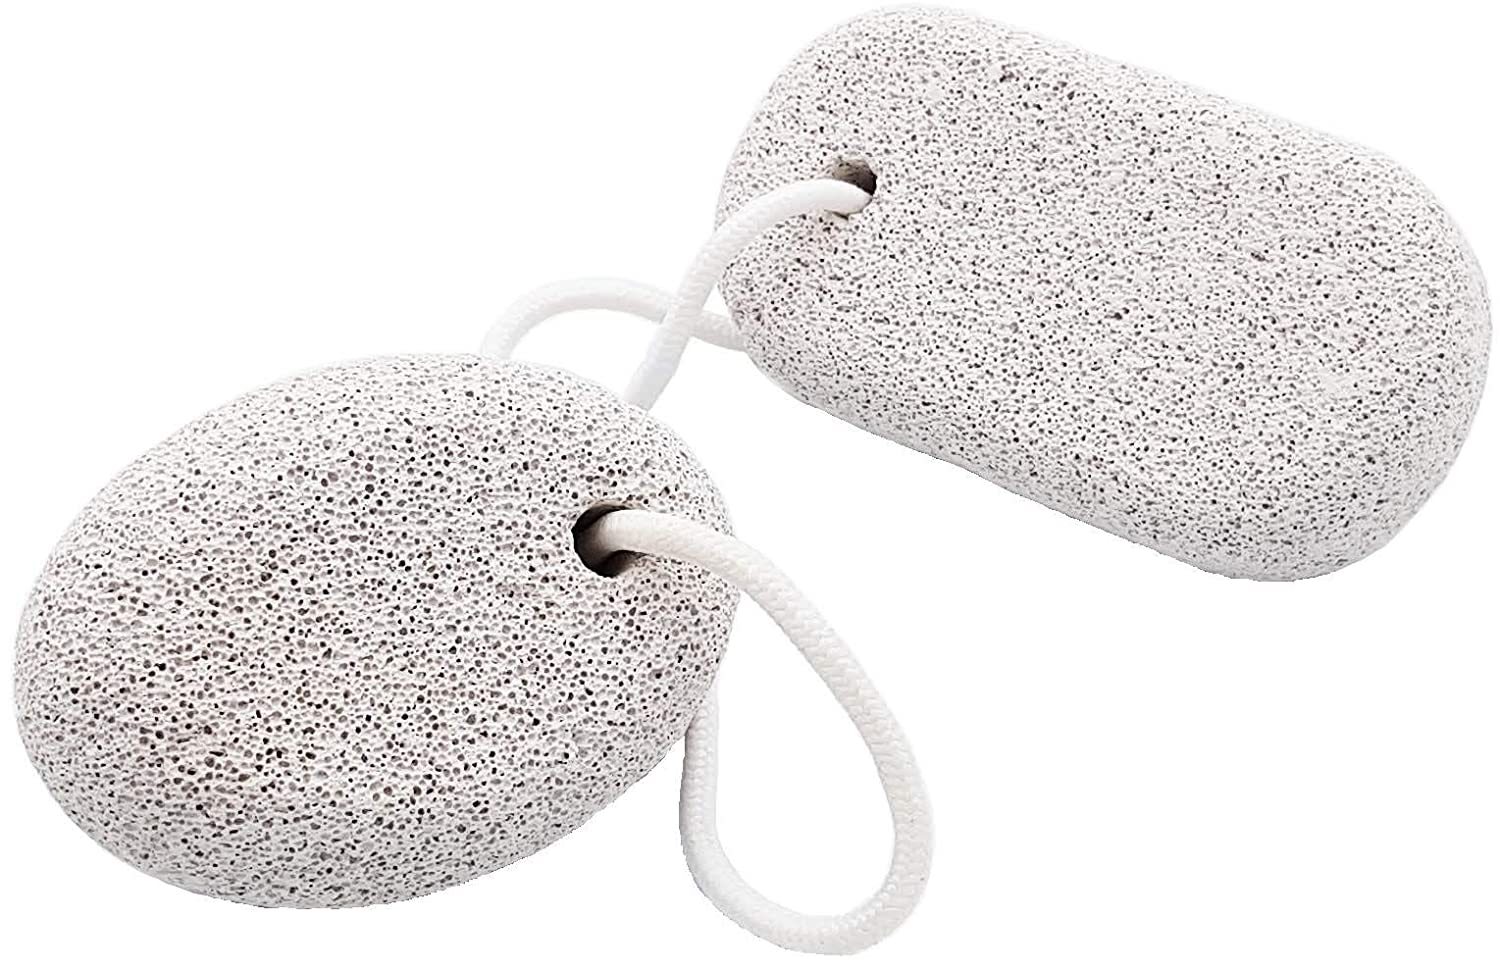 Pumice Foot Scrubber Stone 2Pcs - Pumice Stone Pedicure Tools Hard Skin Callus Remover Foot Exfoliation - Lava Natural Pumice Stone Foot Hand Scrub - Pumice Rock for feet to Remove Dry Dead Skin: Beauty